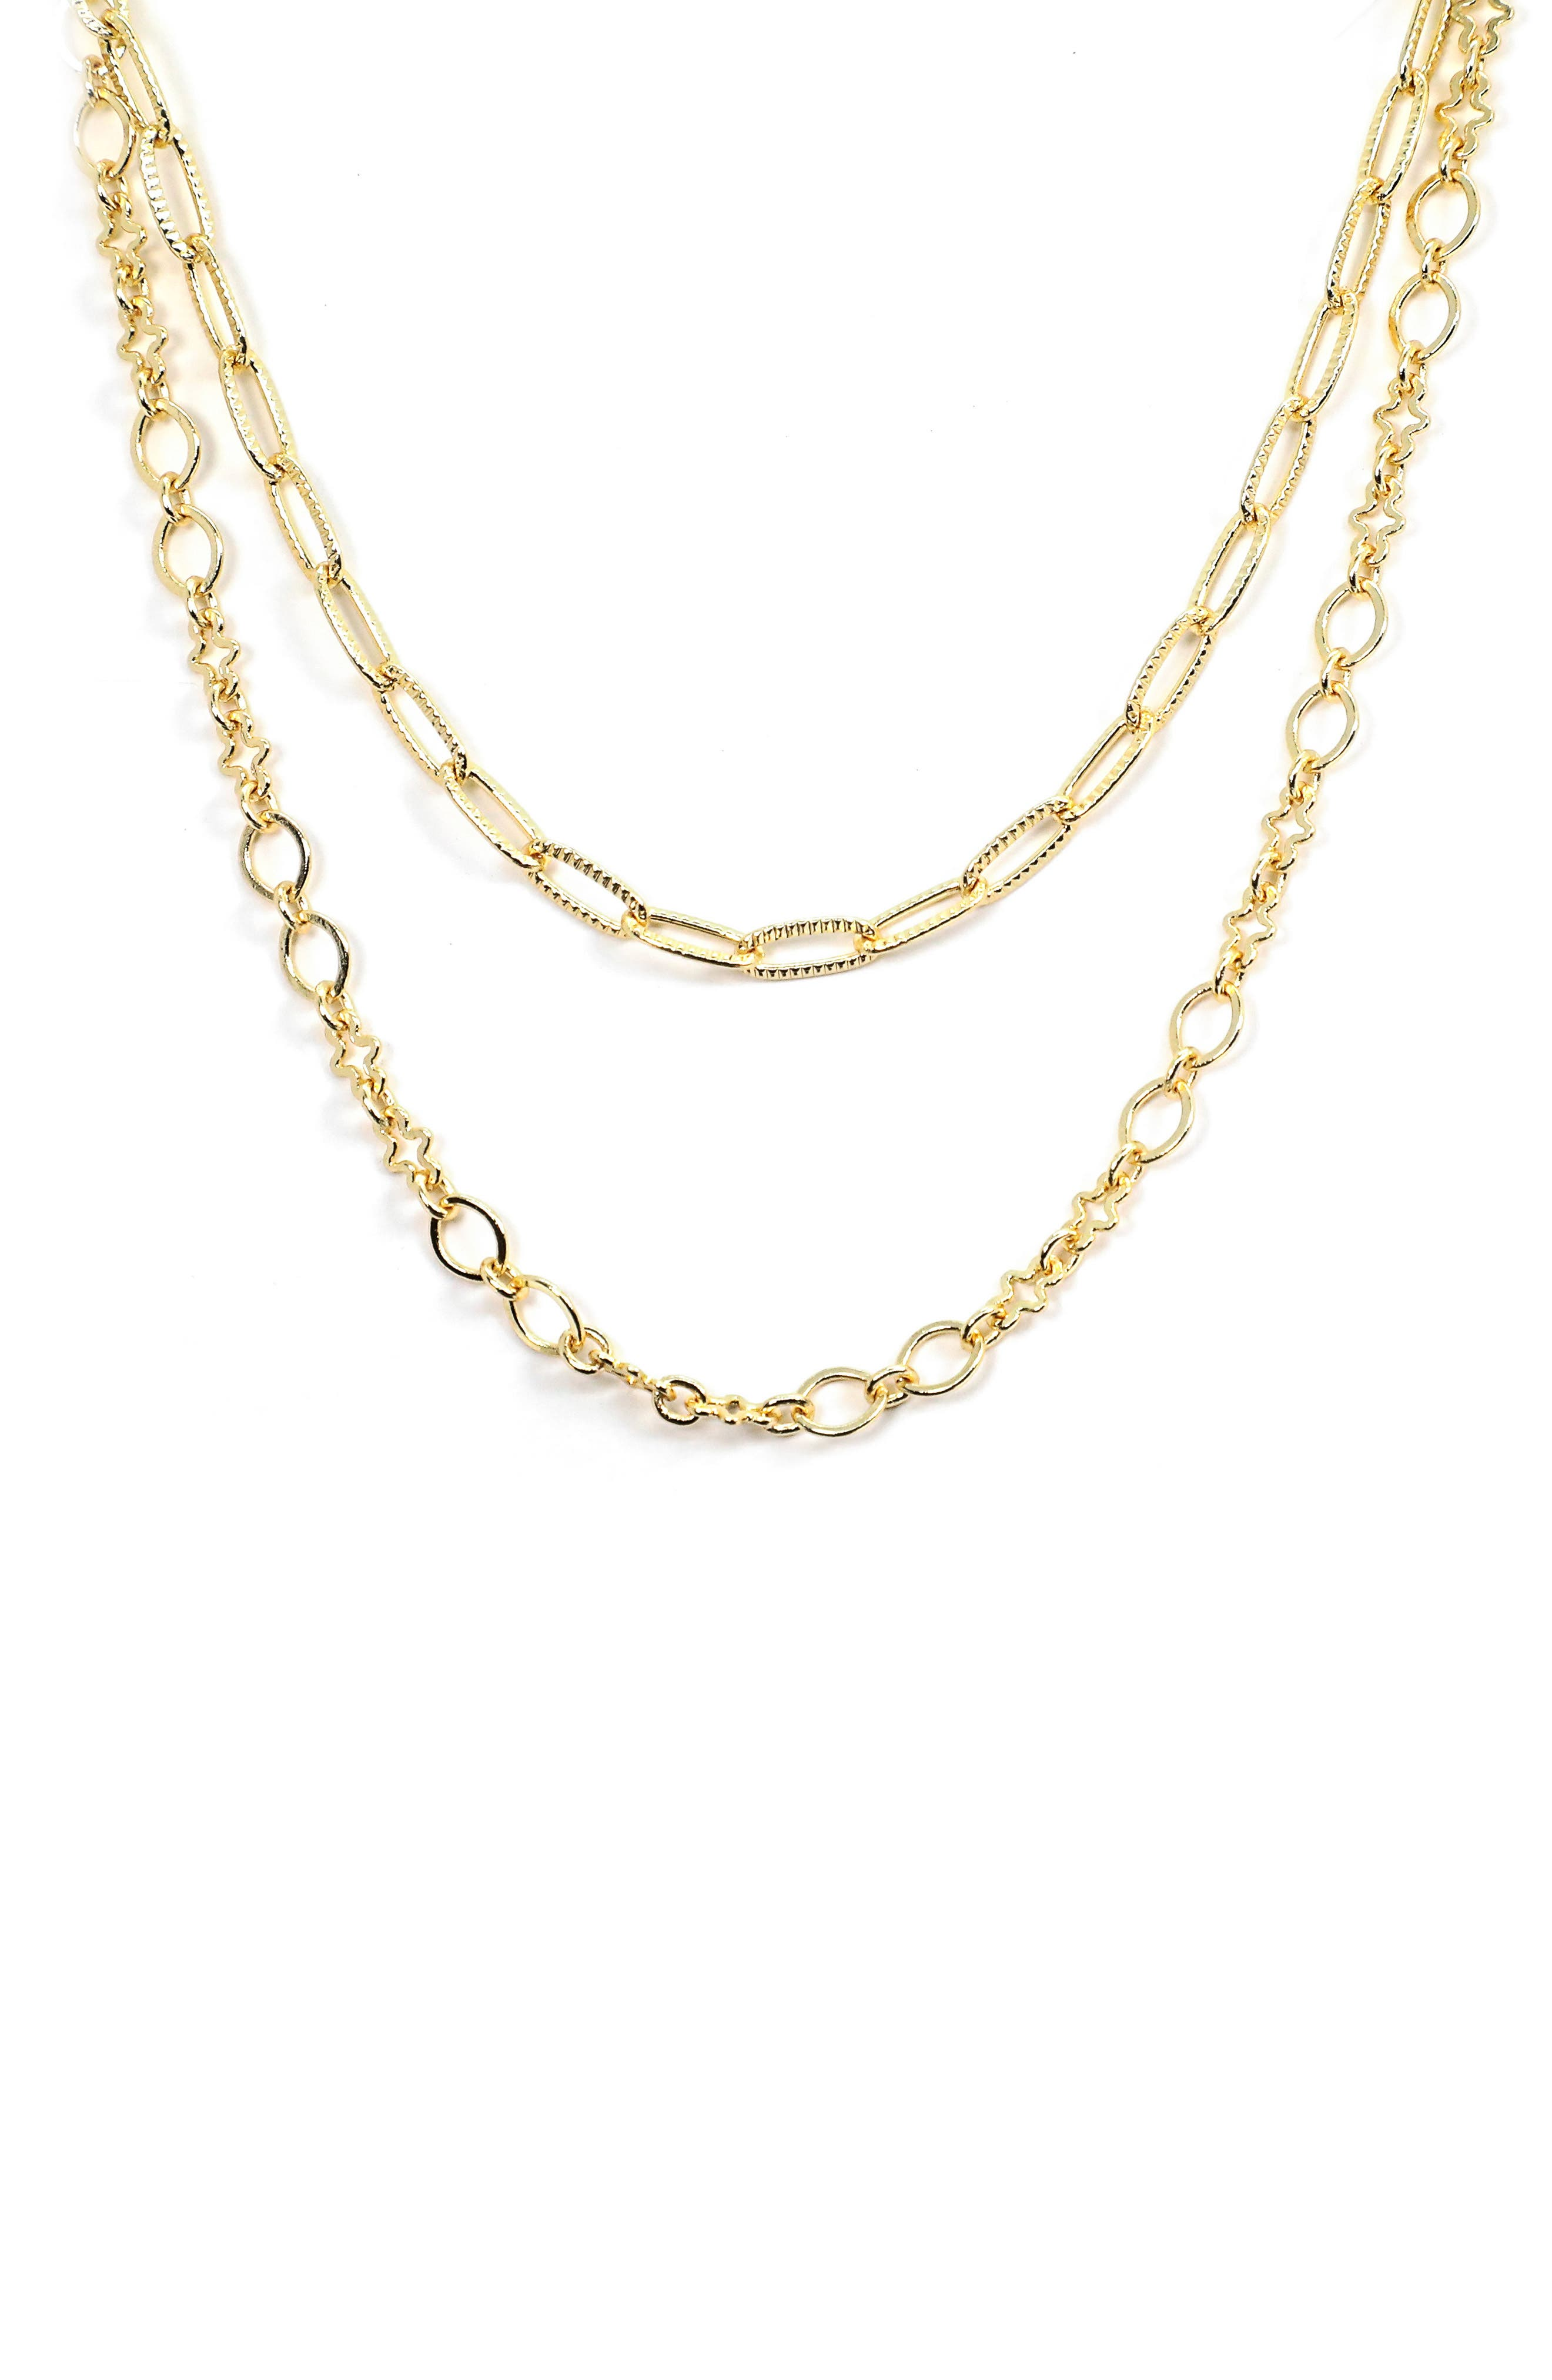 The Essentials 2-In-1 Layered Necklace